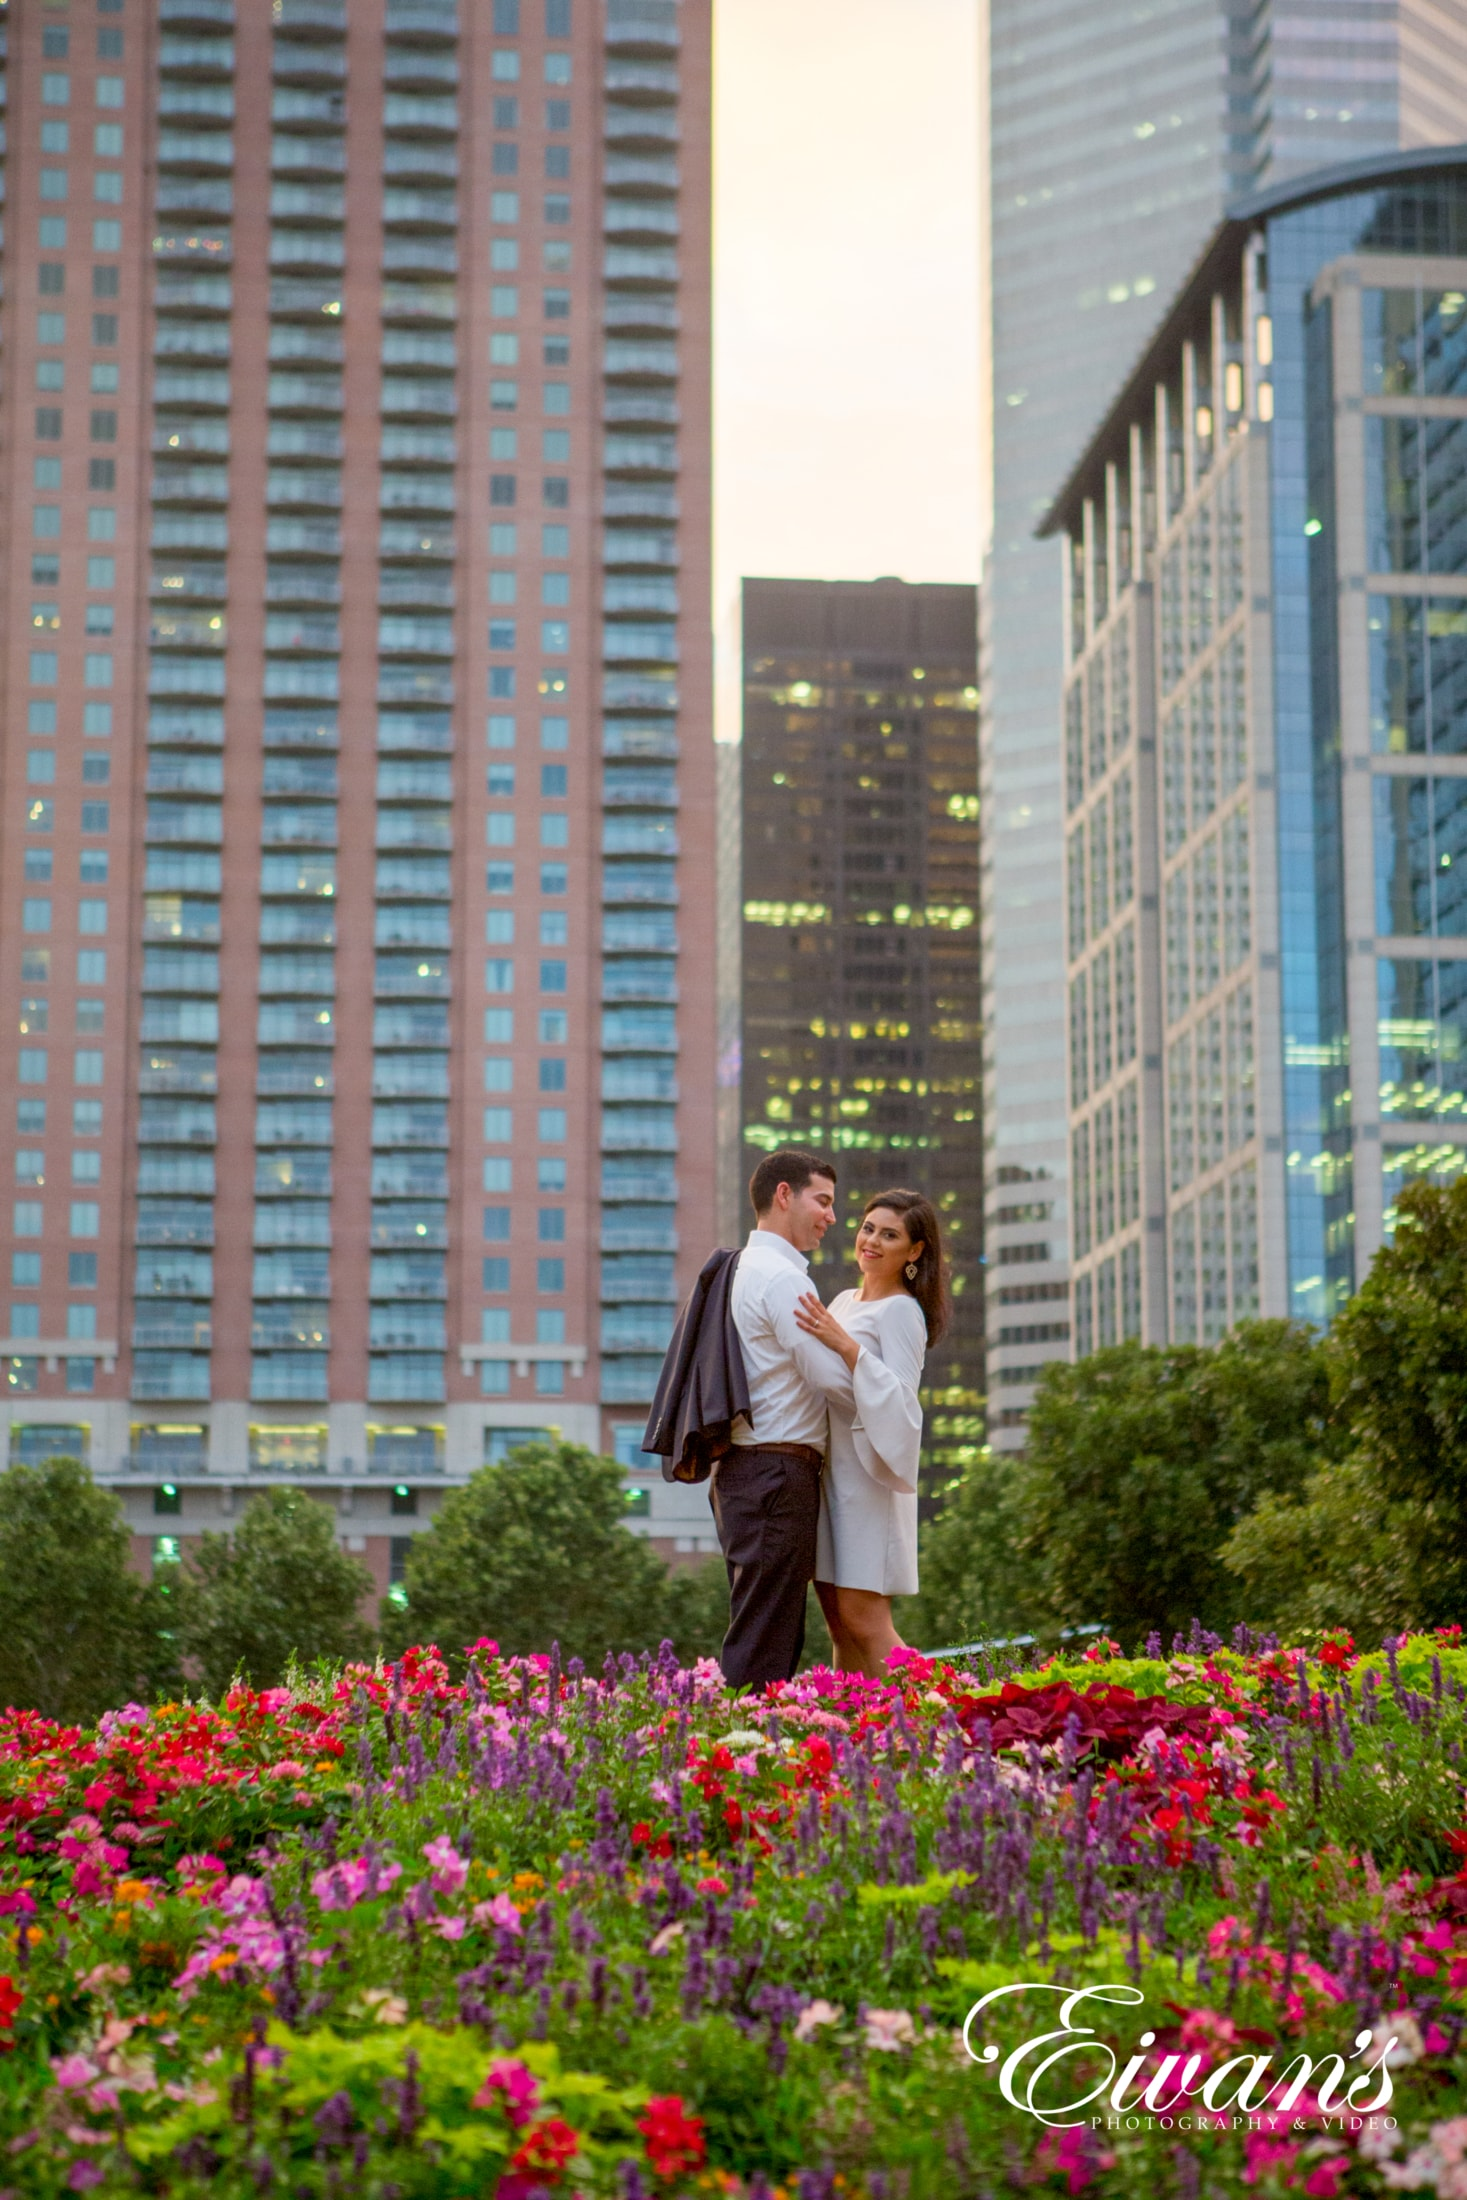 image of engaged couple in a meadow of flowers